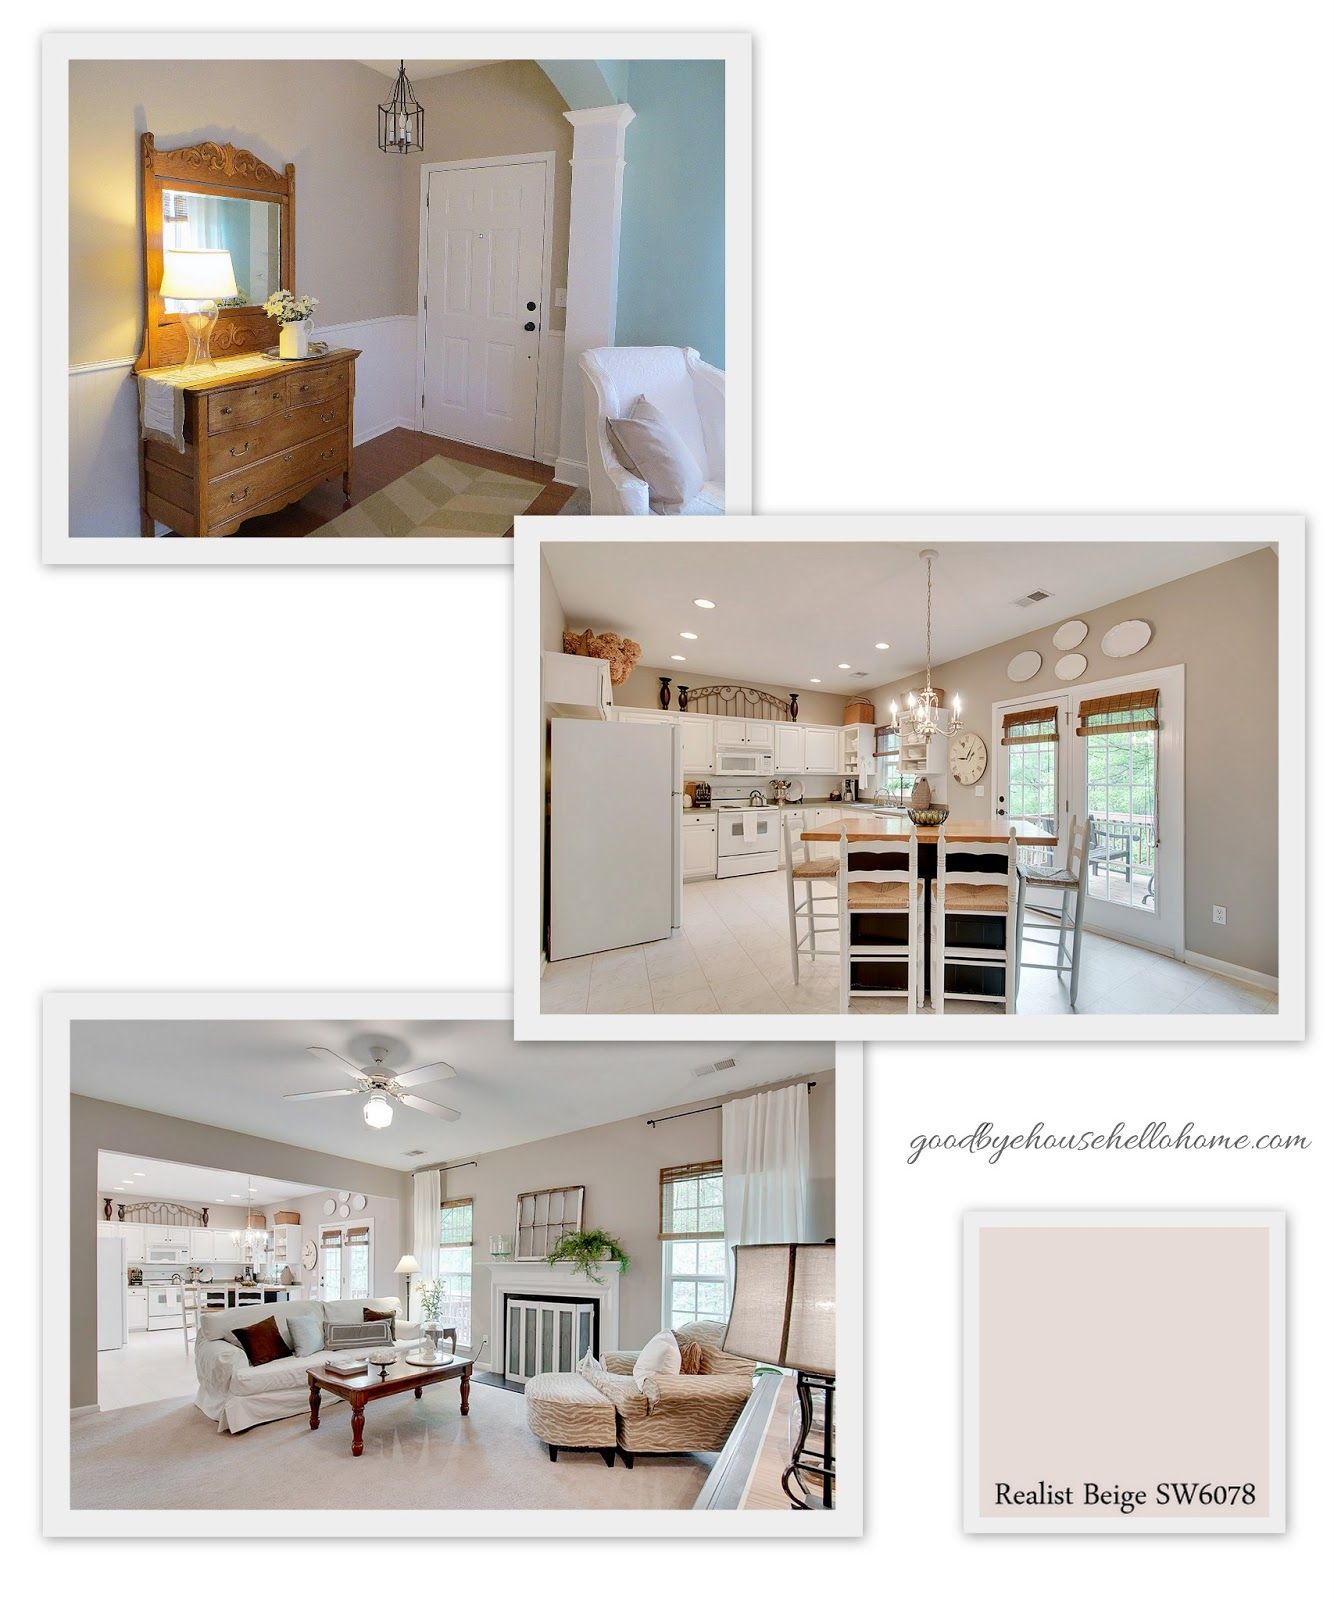 Interior Design Home Staging: Sherwin Williams Realist Beige (With Images)